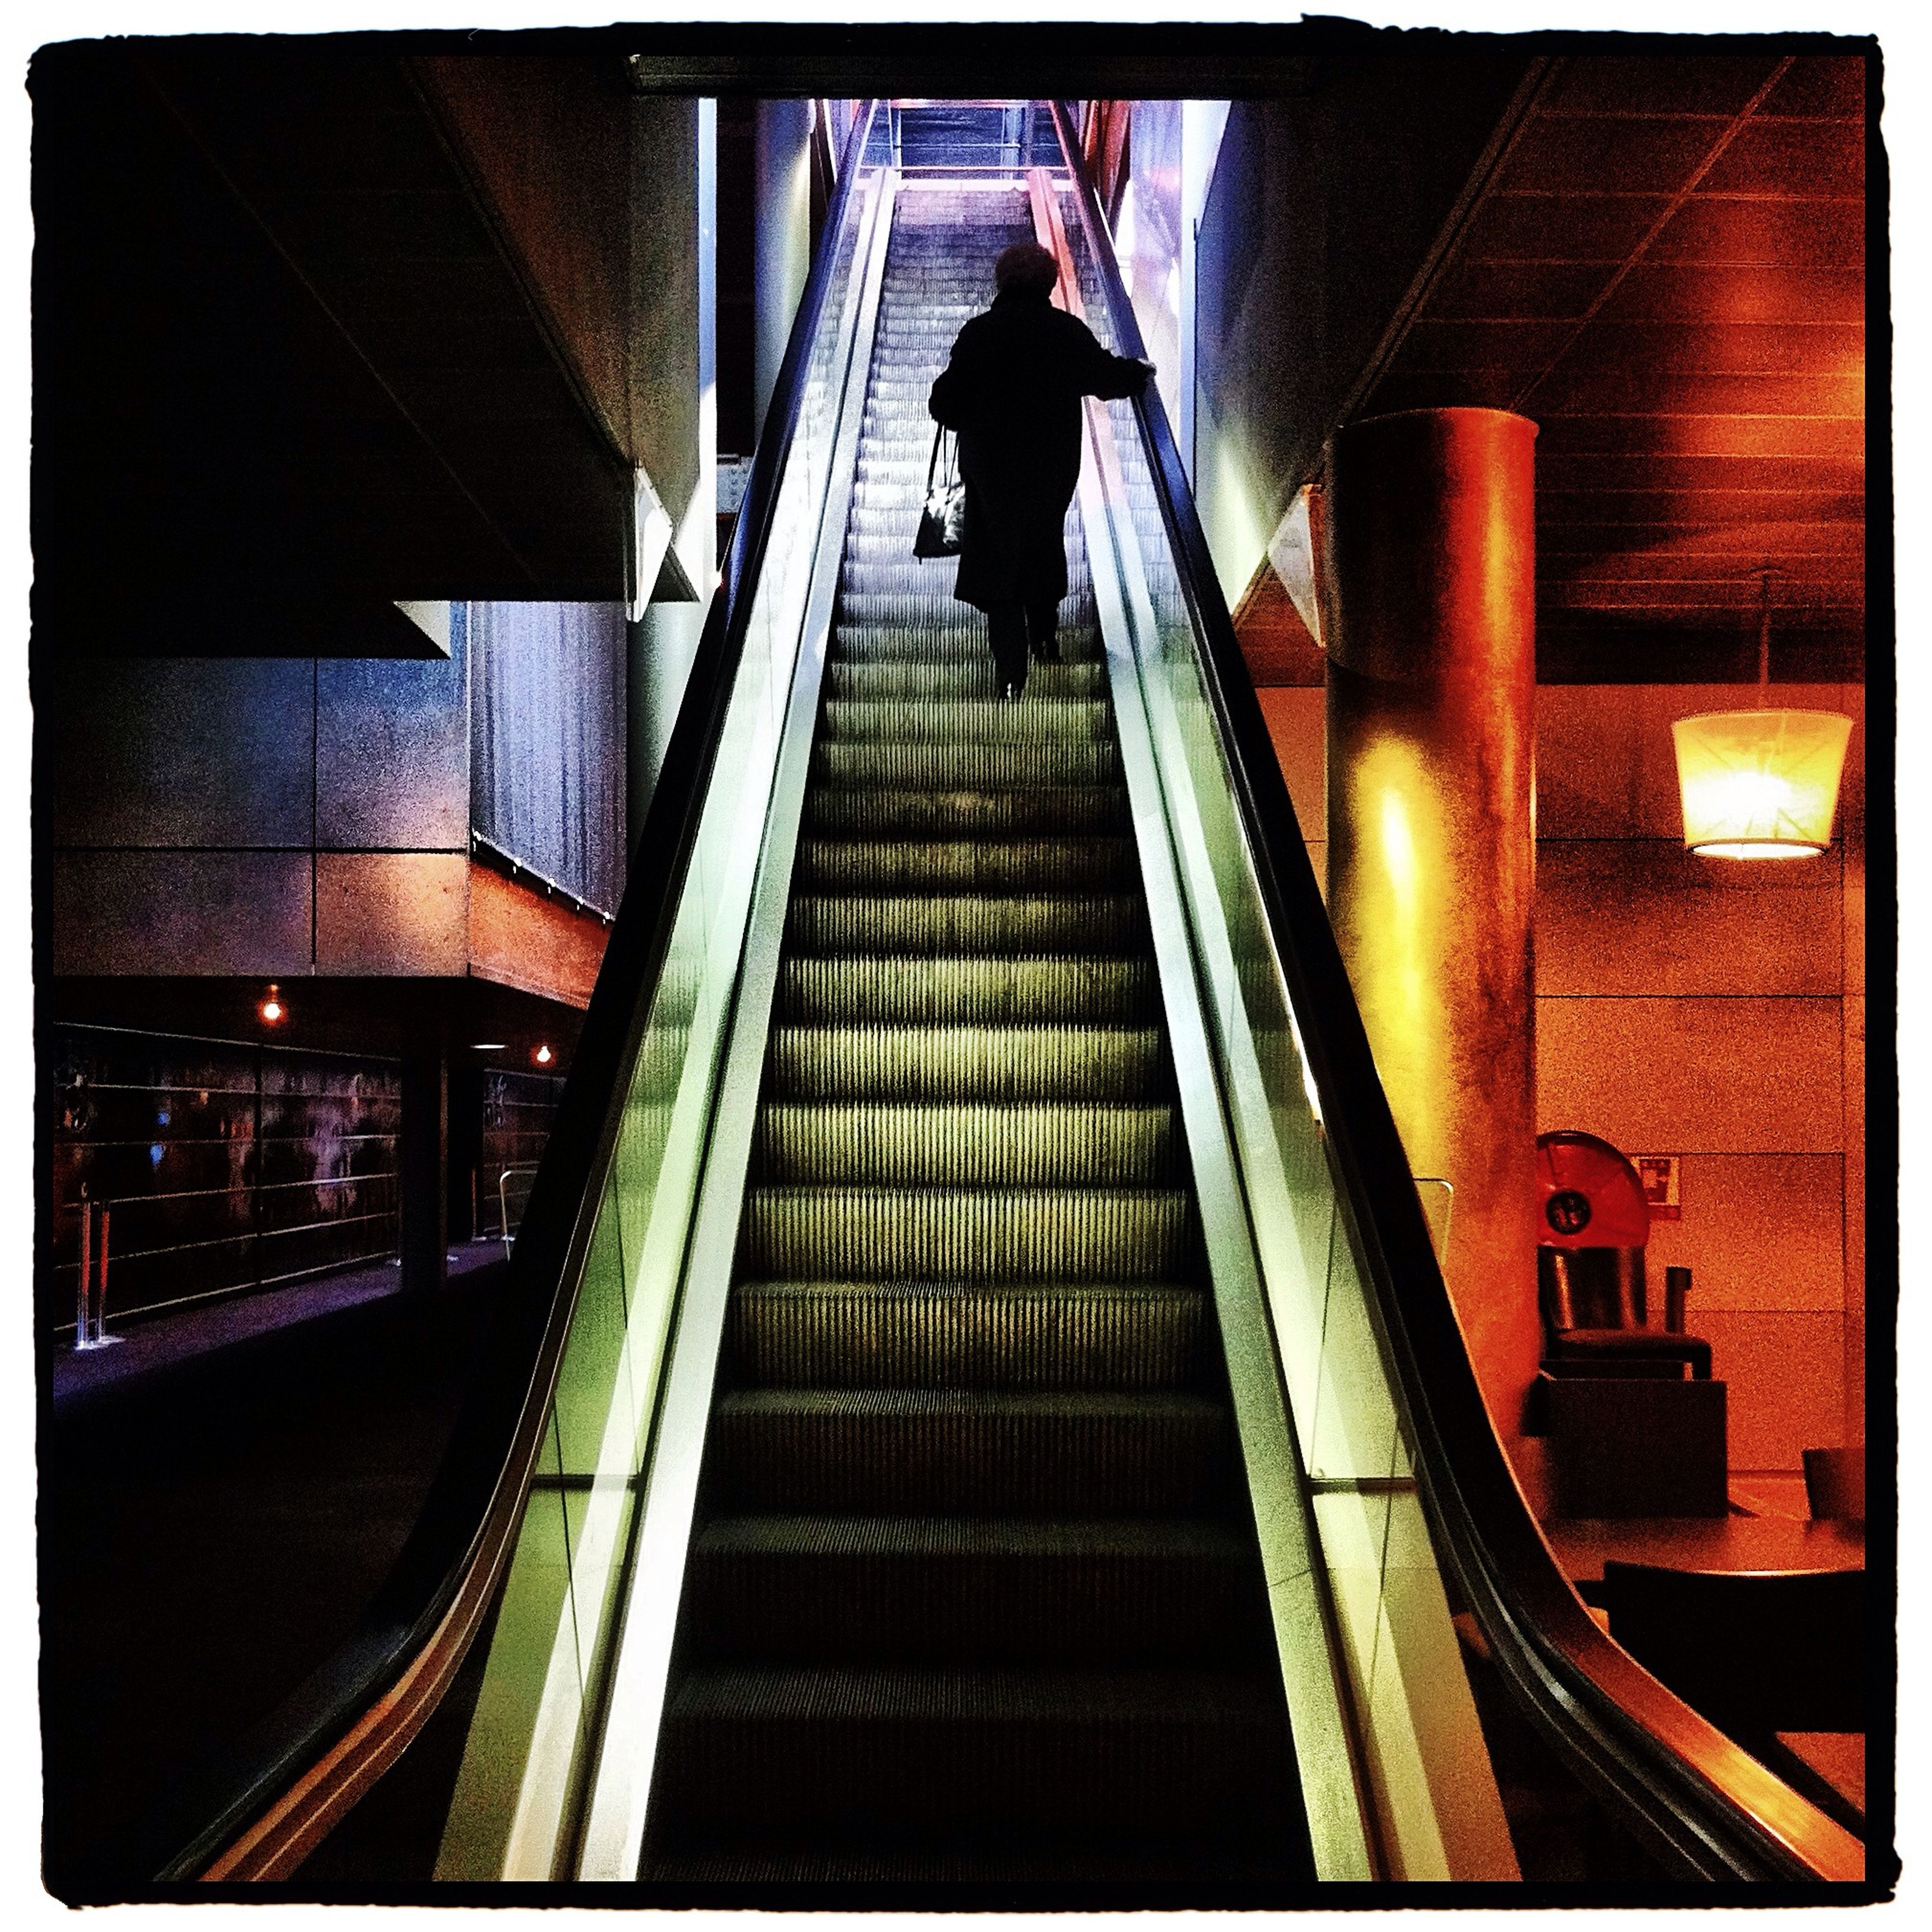 steps, indoors, steps and staircases, escalator, transfer print, staircase, railing, architecture, illuminated, built structure, men, auto post production filter, the way forward, subway, railroad station, lifestyles, rail transportation, railroad station platform